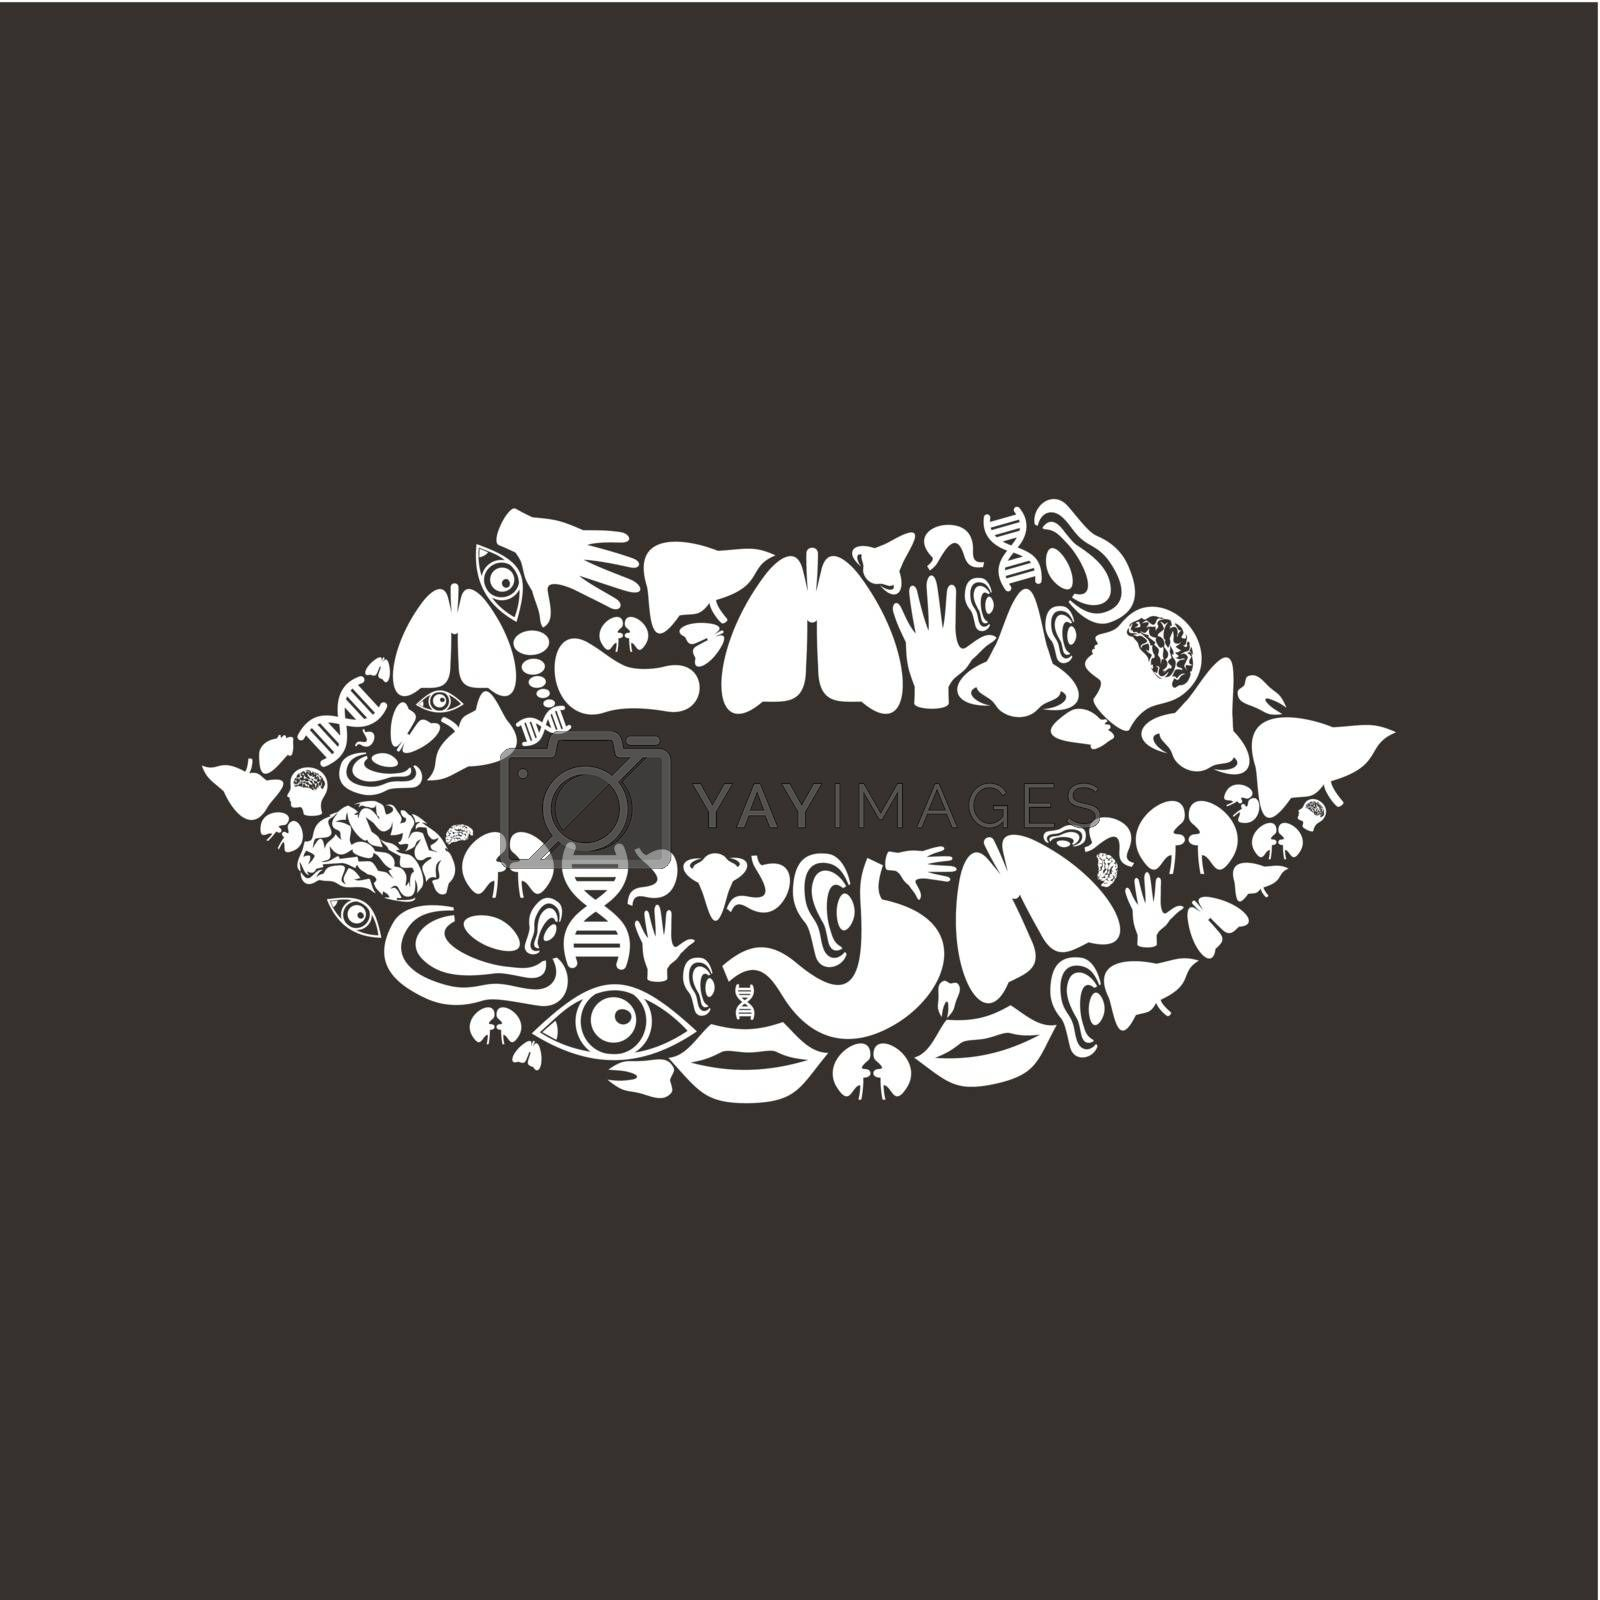 Mouth made of body parts. A vector illustration